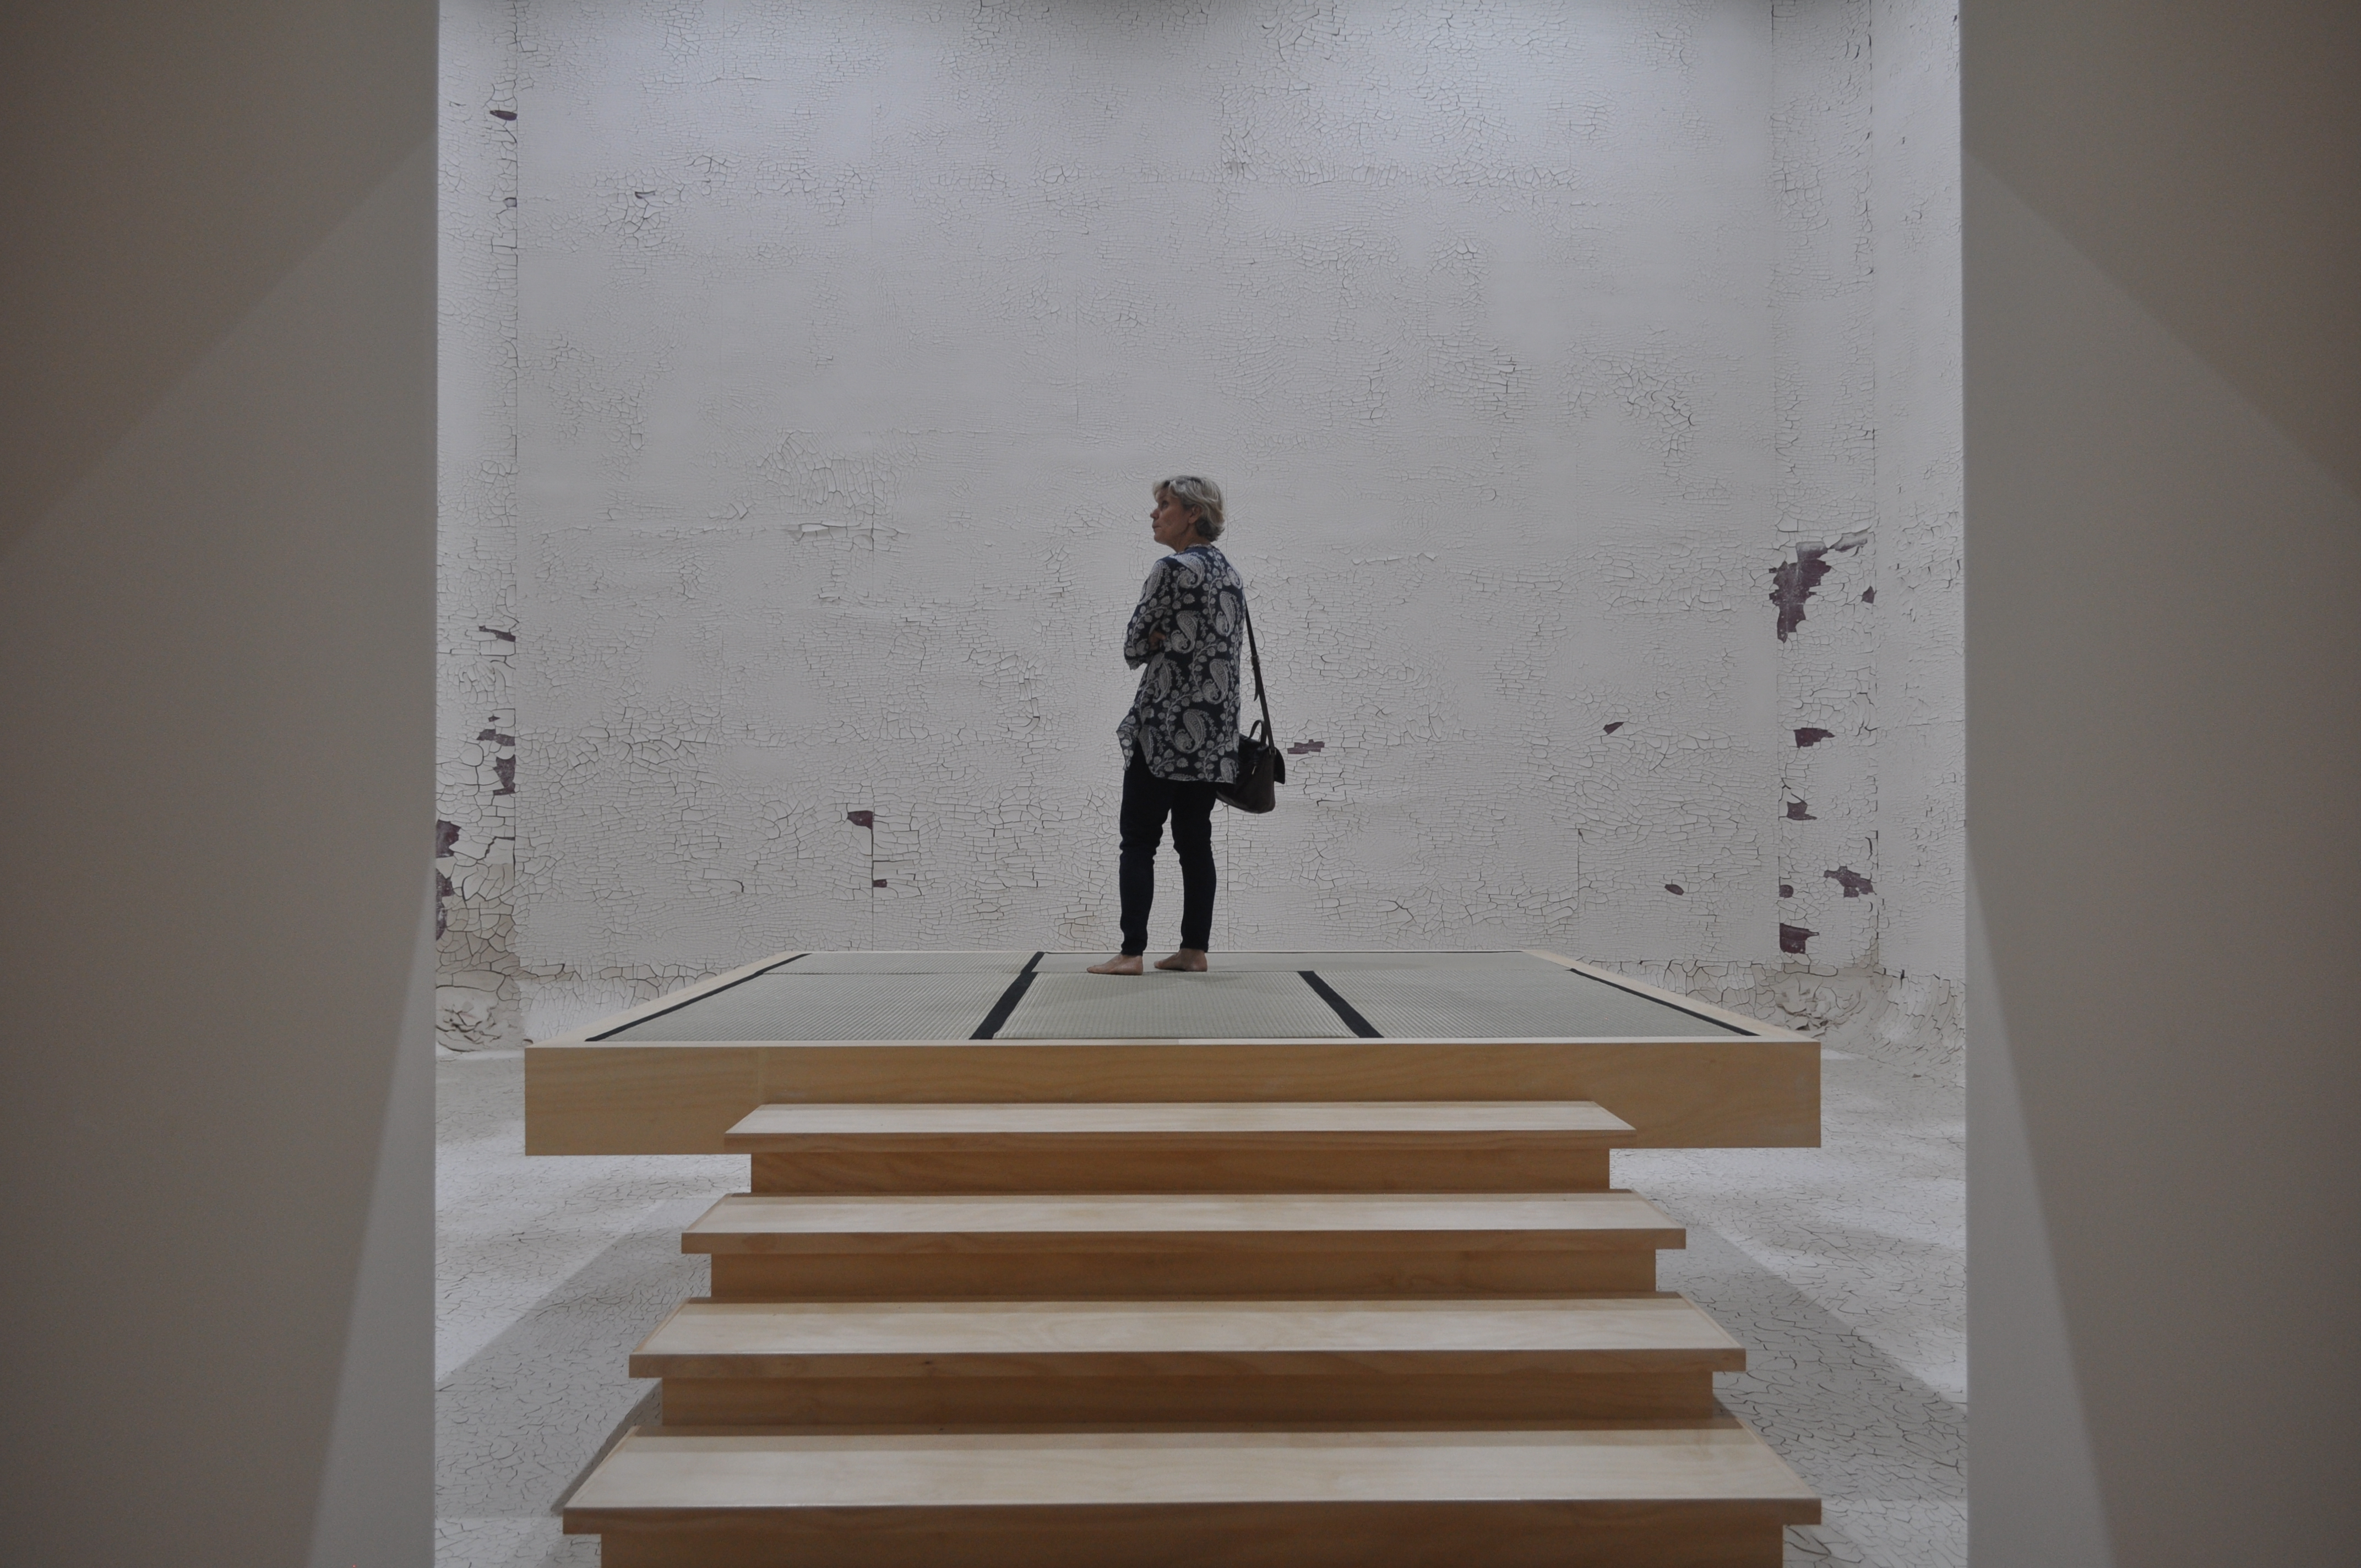 art biennale of sydney Biennale of sydney job opportunity the biennale of sydney is seeking a highly skilled partnerships manager who will be responsible for developing and managing relations with the biennale's corporate partners.